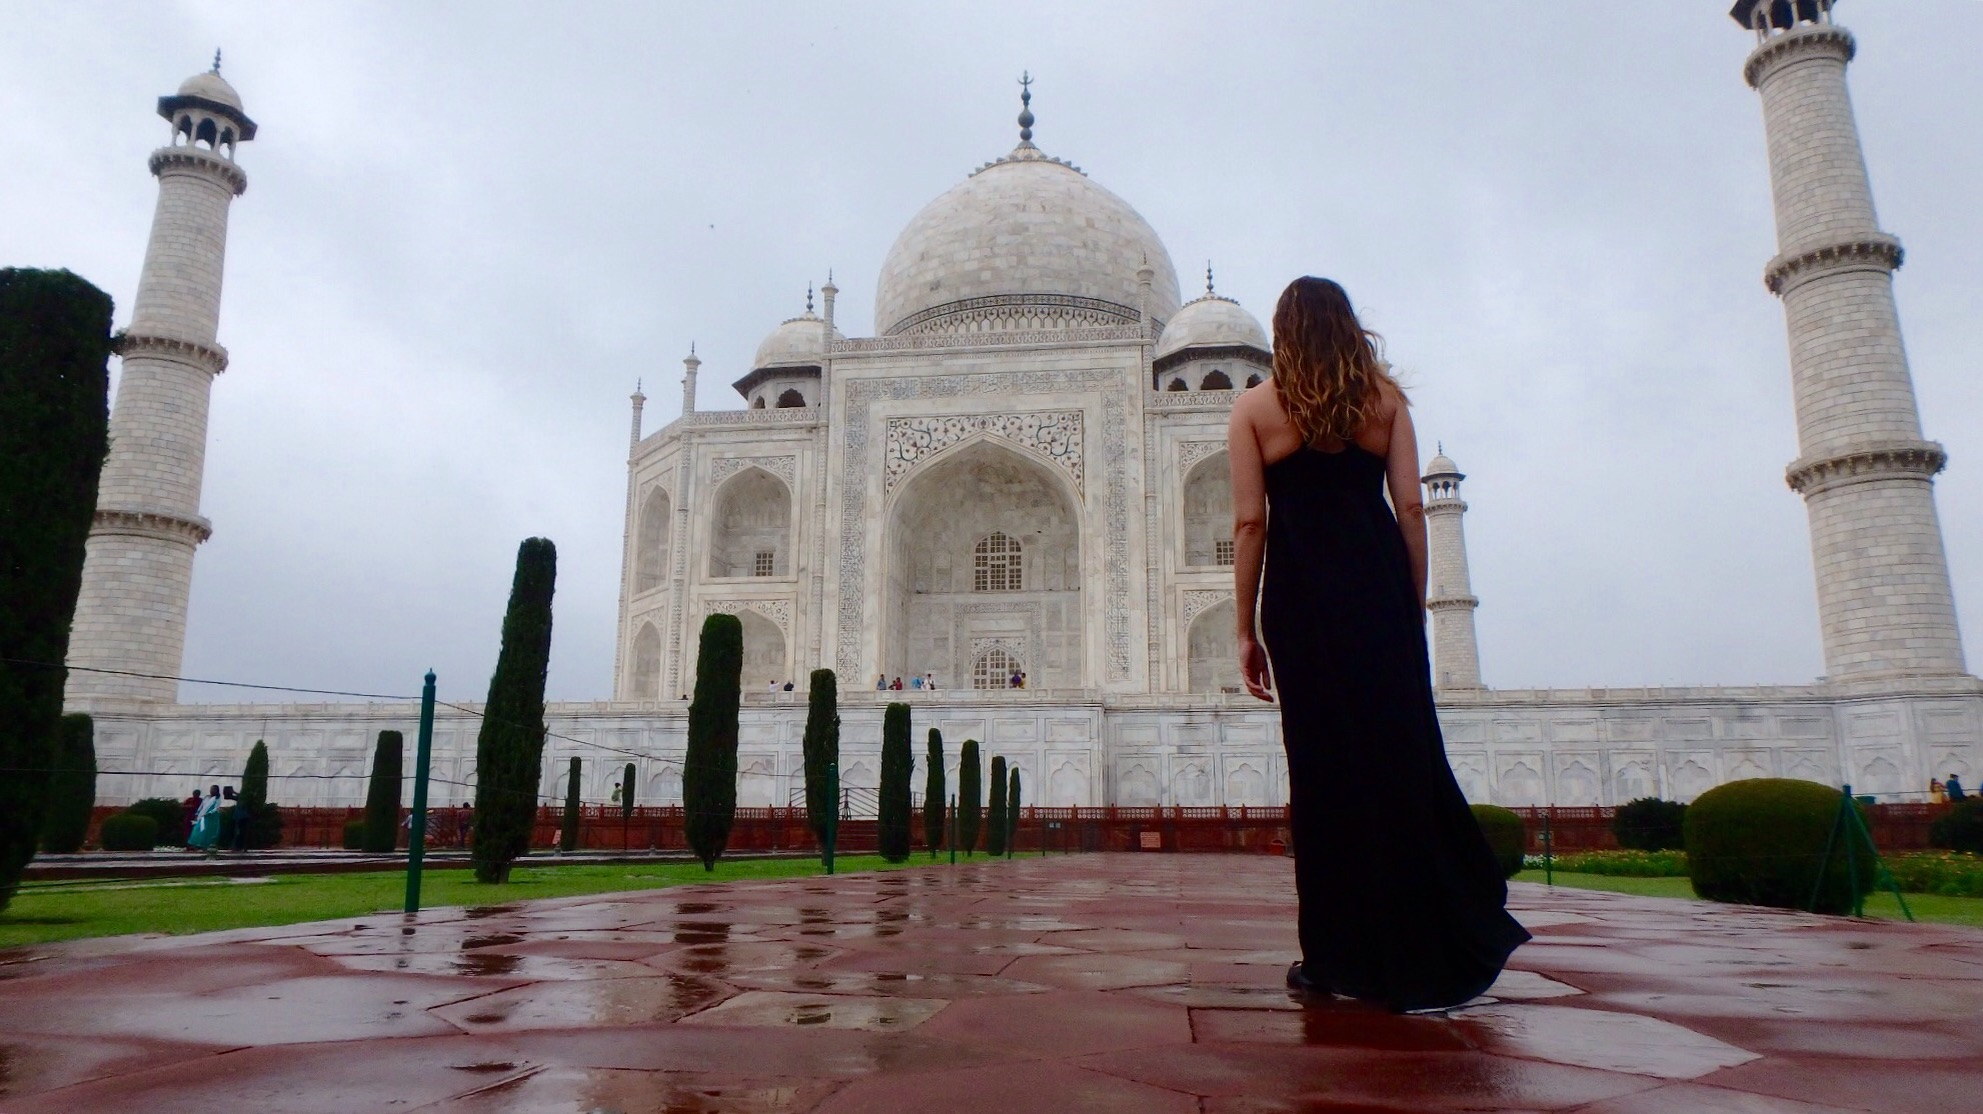 At the Taj in the early morning hours: overcast but lovely.